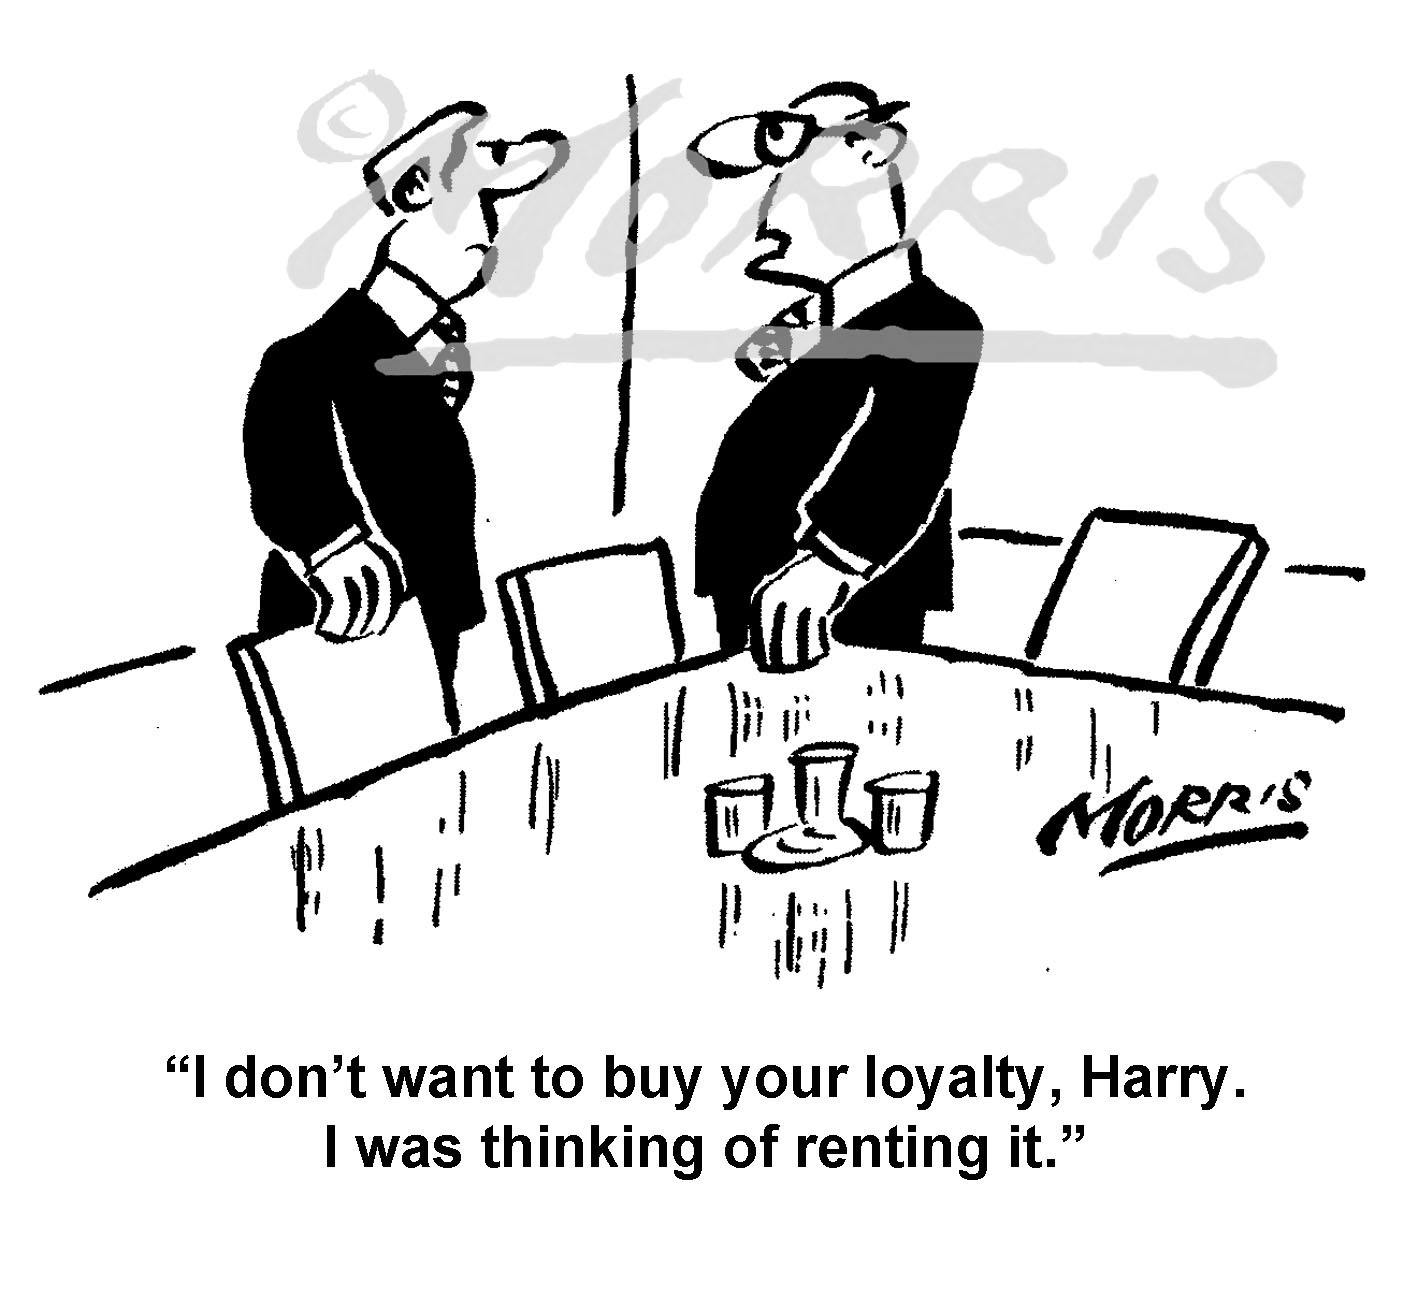 Boardroom chairman director cartoon – Ref: 8336bw